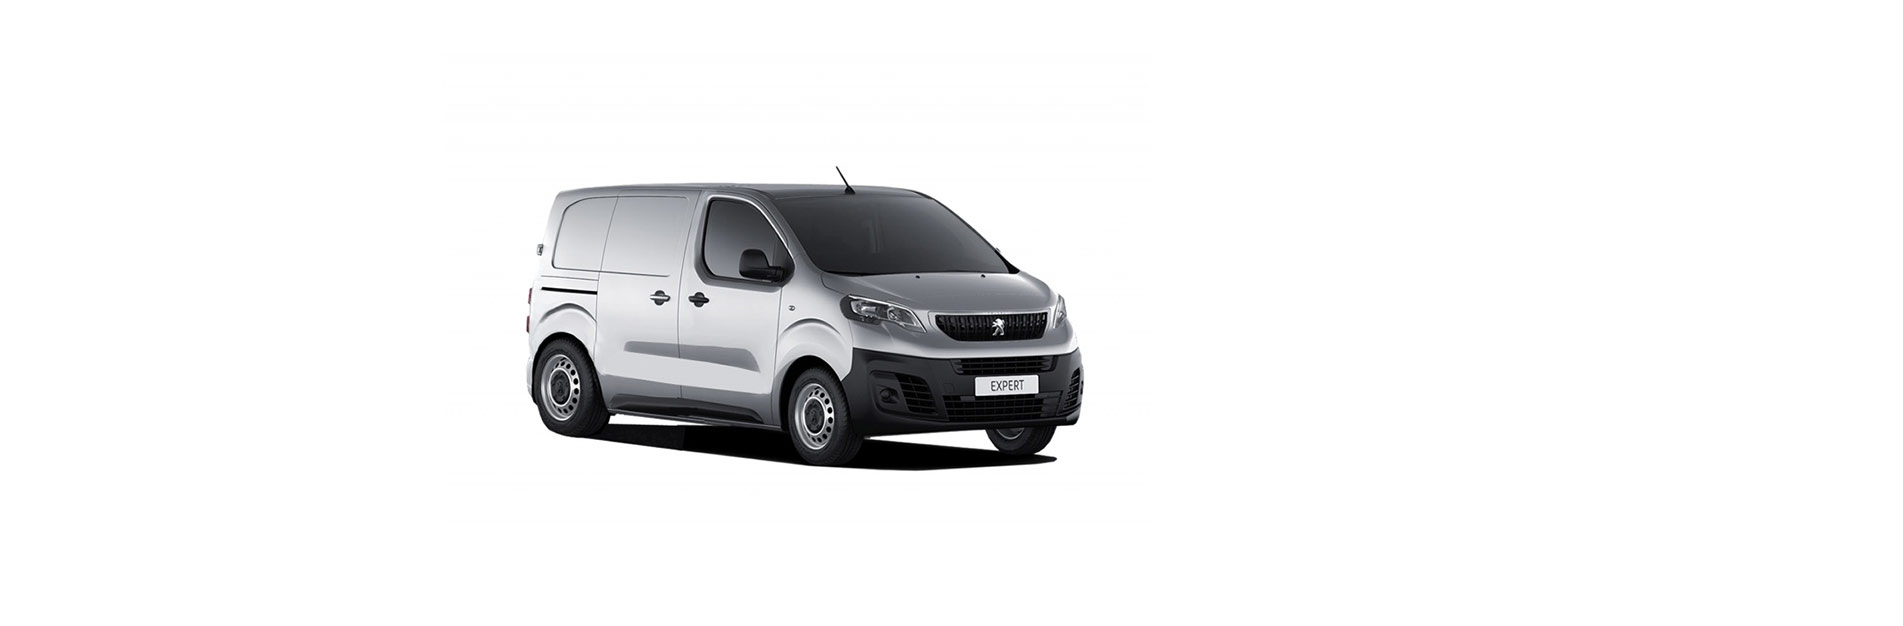 peugeot-expert-van-new-commercial-sales-head